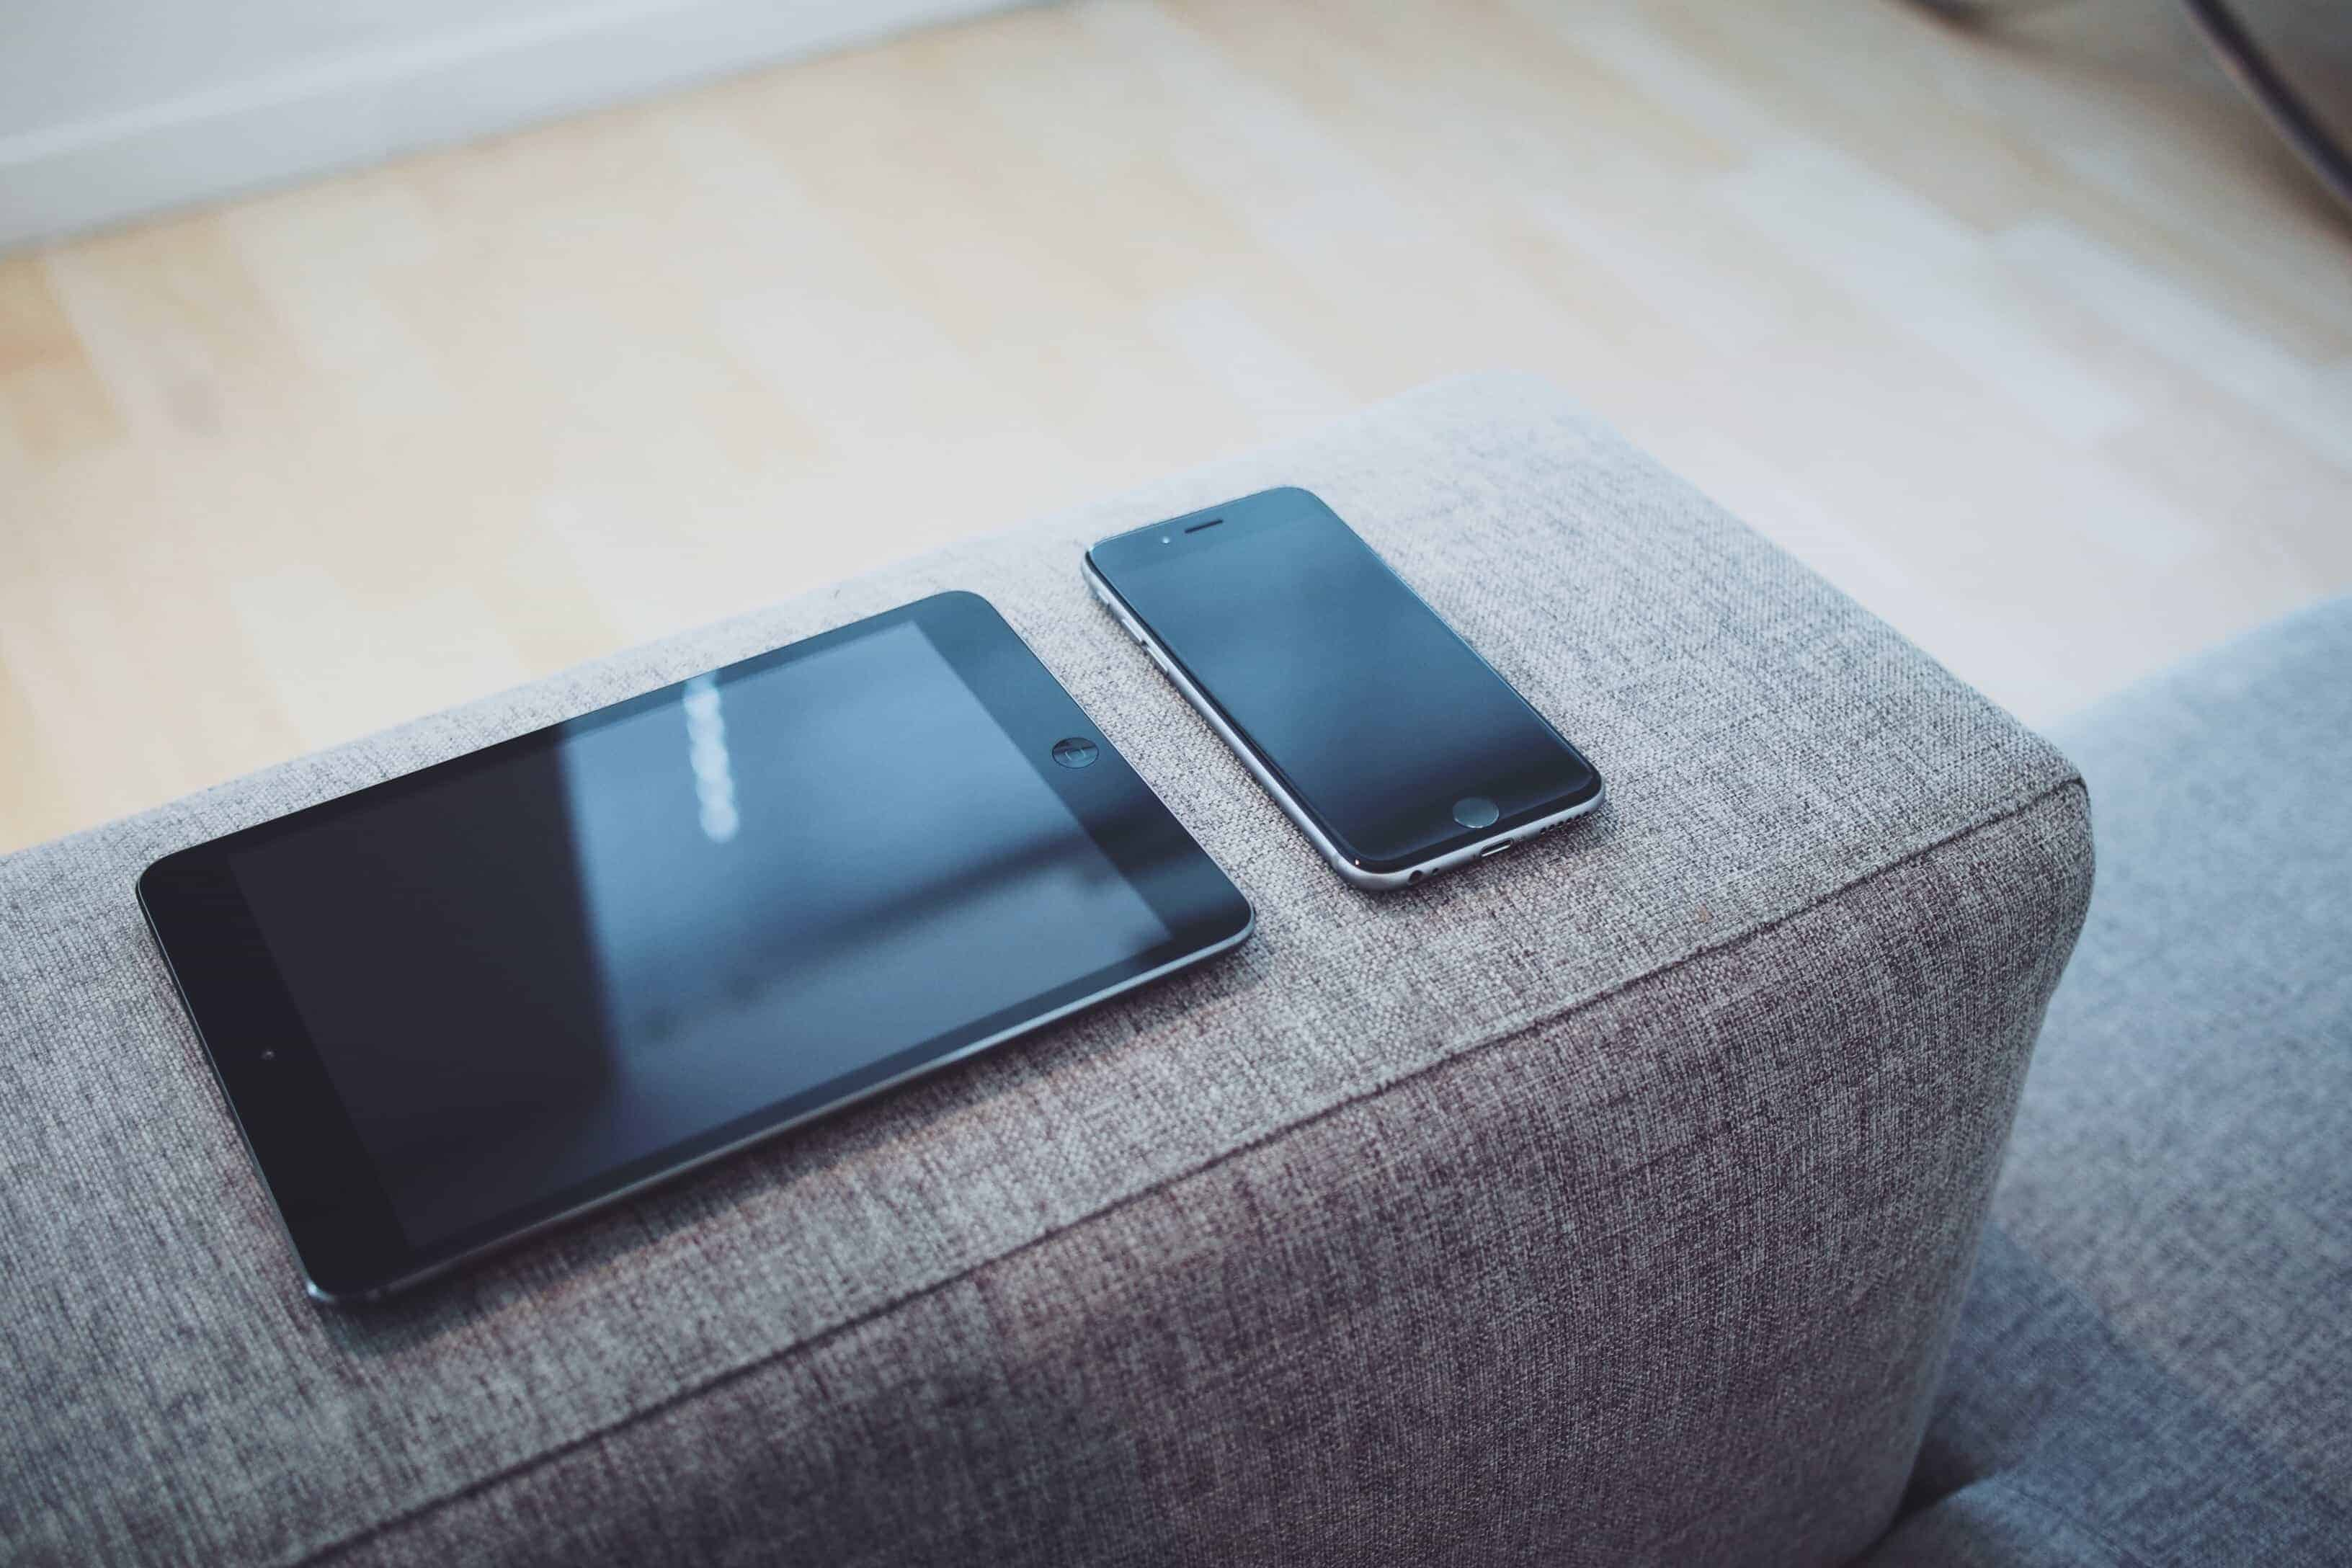 picture of an iPad and iPhone on the arm of a sofa